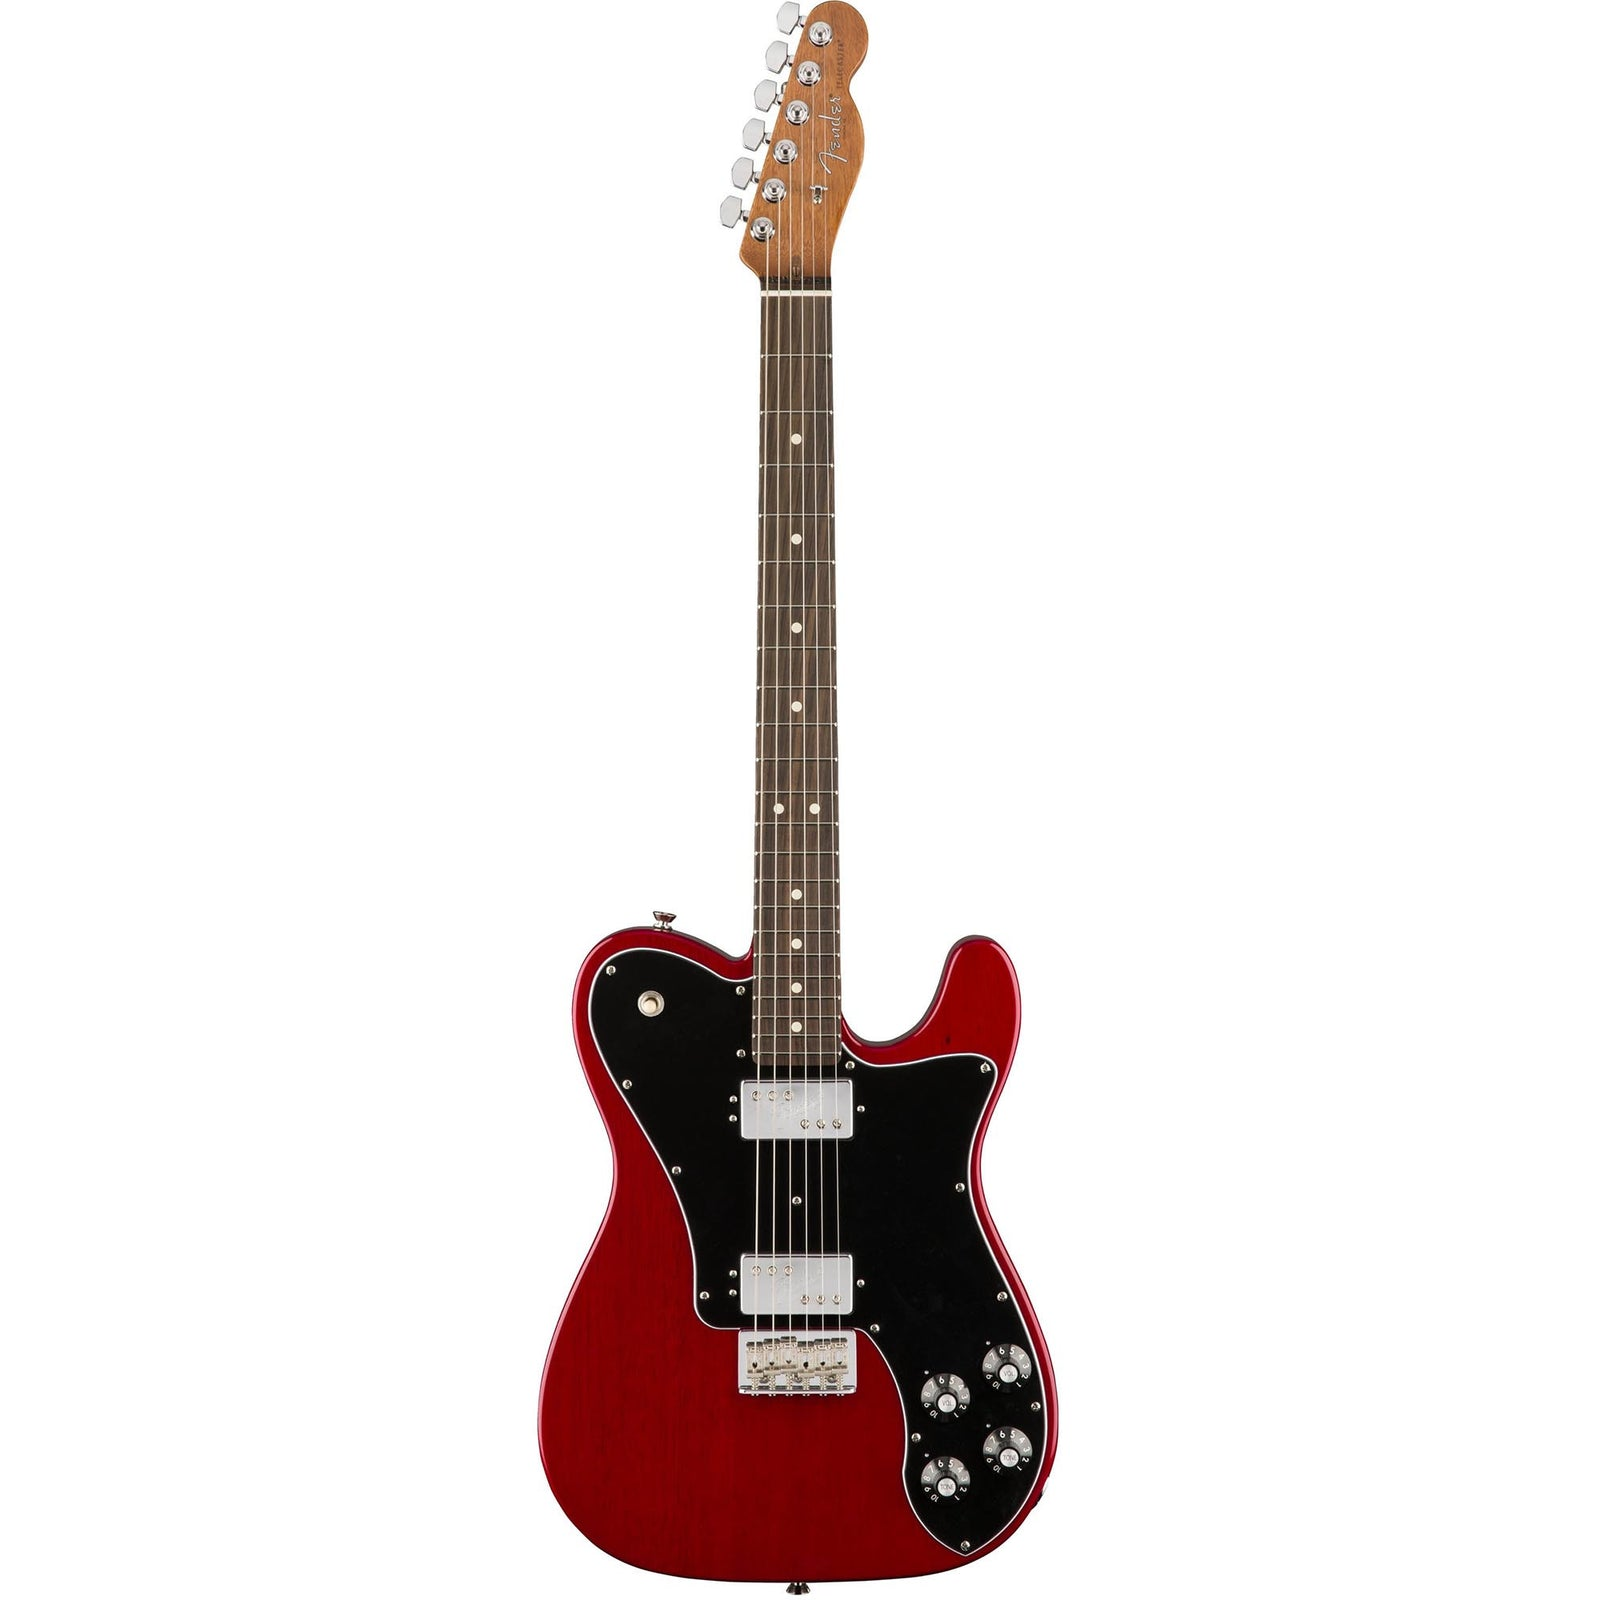 Fender Limited Edition American Professional Mahogany Tele Deluxe Shawbucker